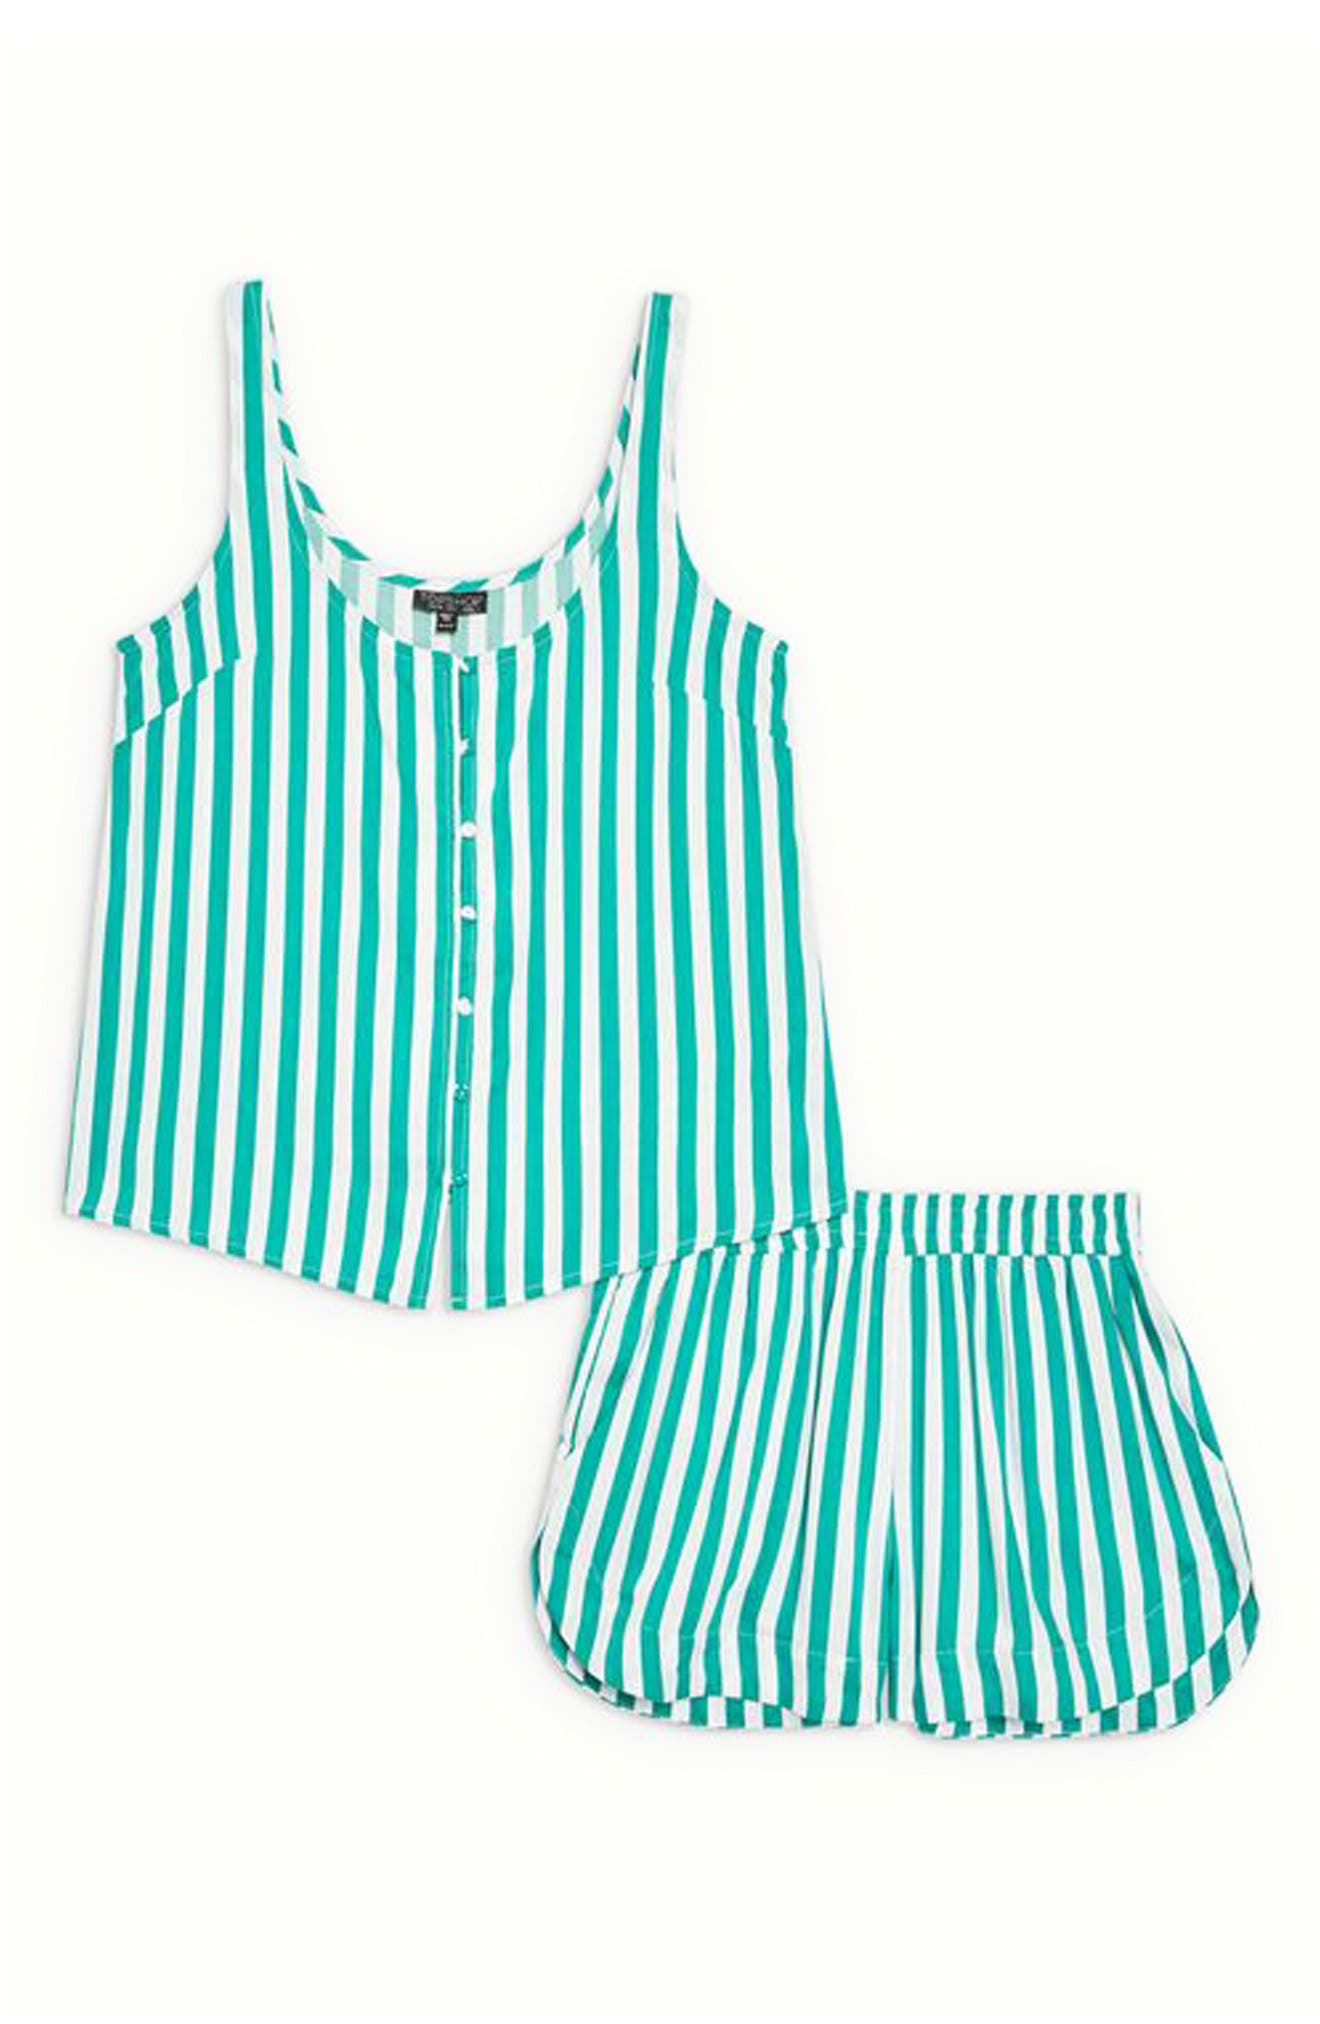 Humbug Stripe Short Pajamas,                             Alternate thumbnail 3, color,                             300